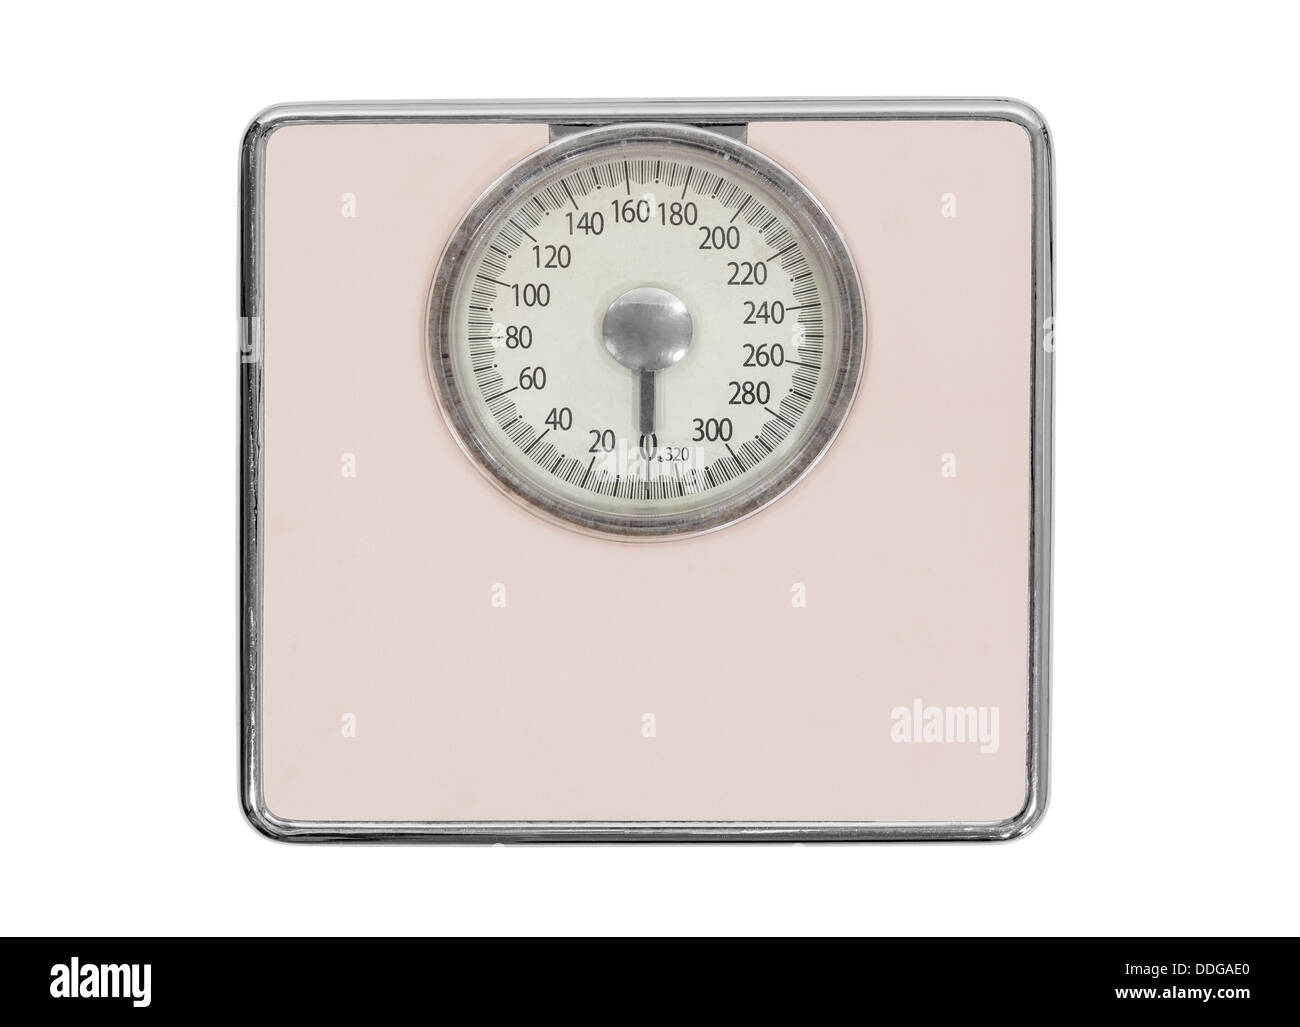 Old pink bathroom scale isolated with clipping path. - Stock Image